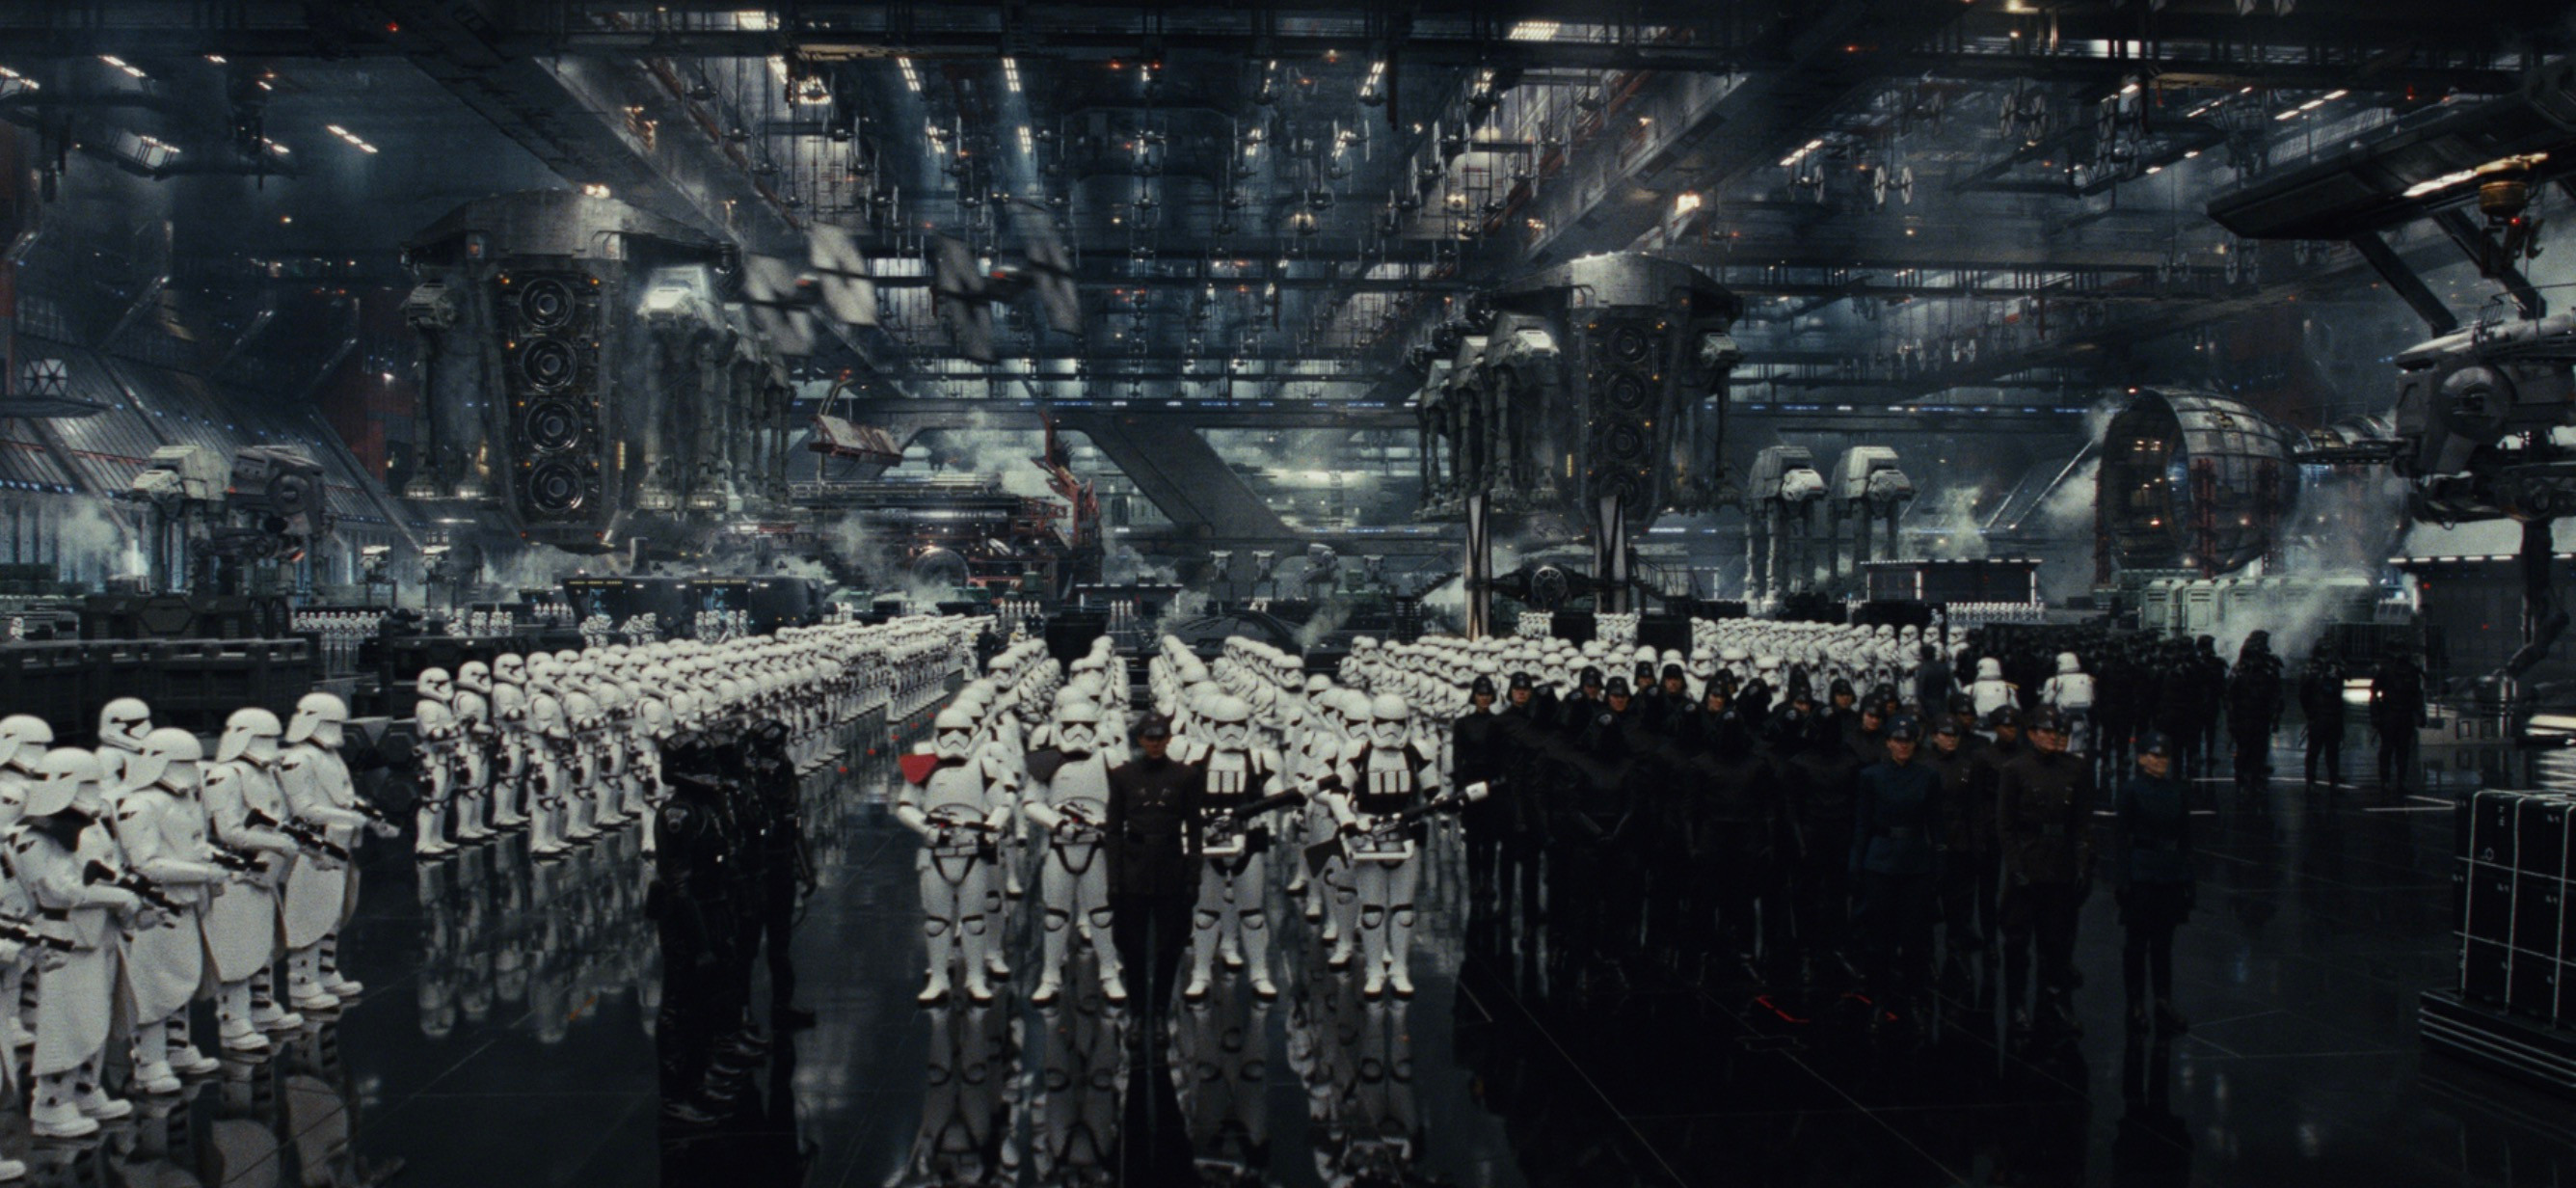 (Star Wars: The Last Jedi - ILM) First Order Hangar -Worked closely with generalists to make all modular Structural components, lots of set